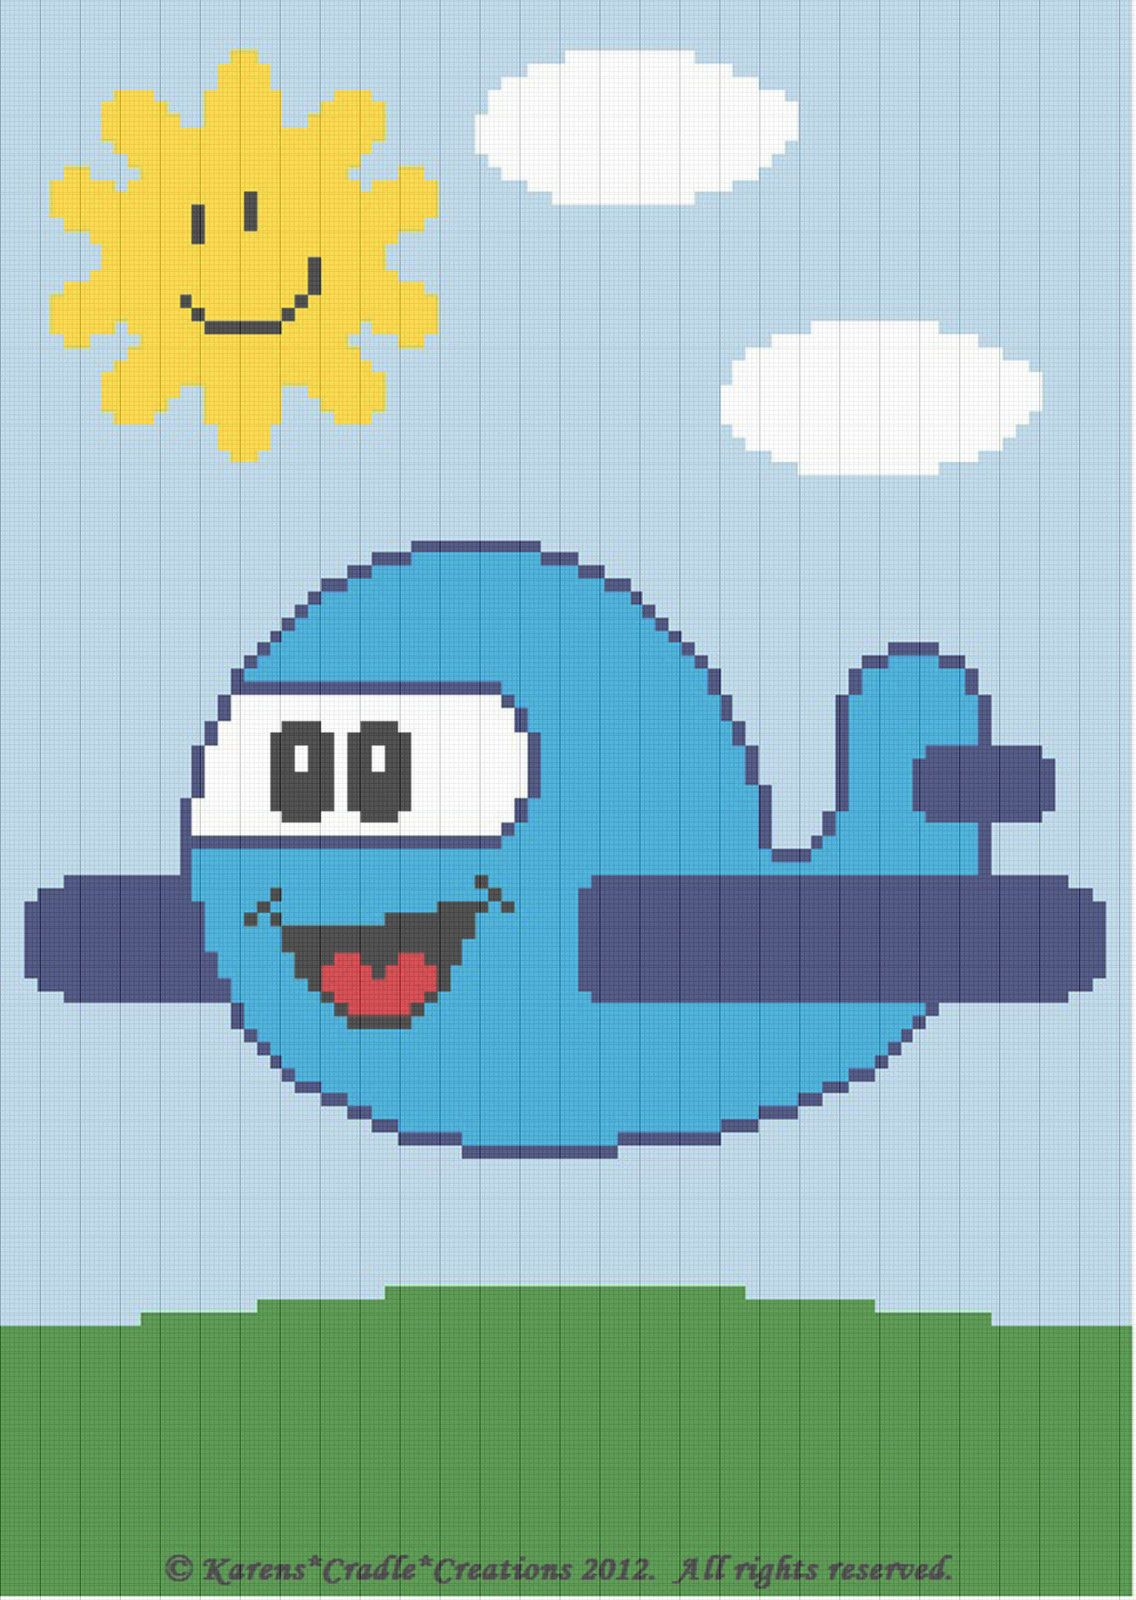 Crochet Patterns Airplane Baby Afghan Graph Pattern Chart